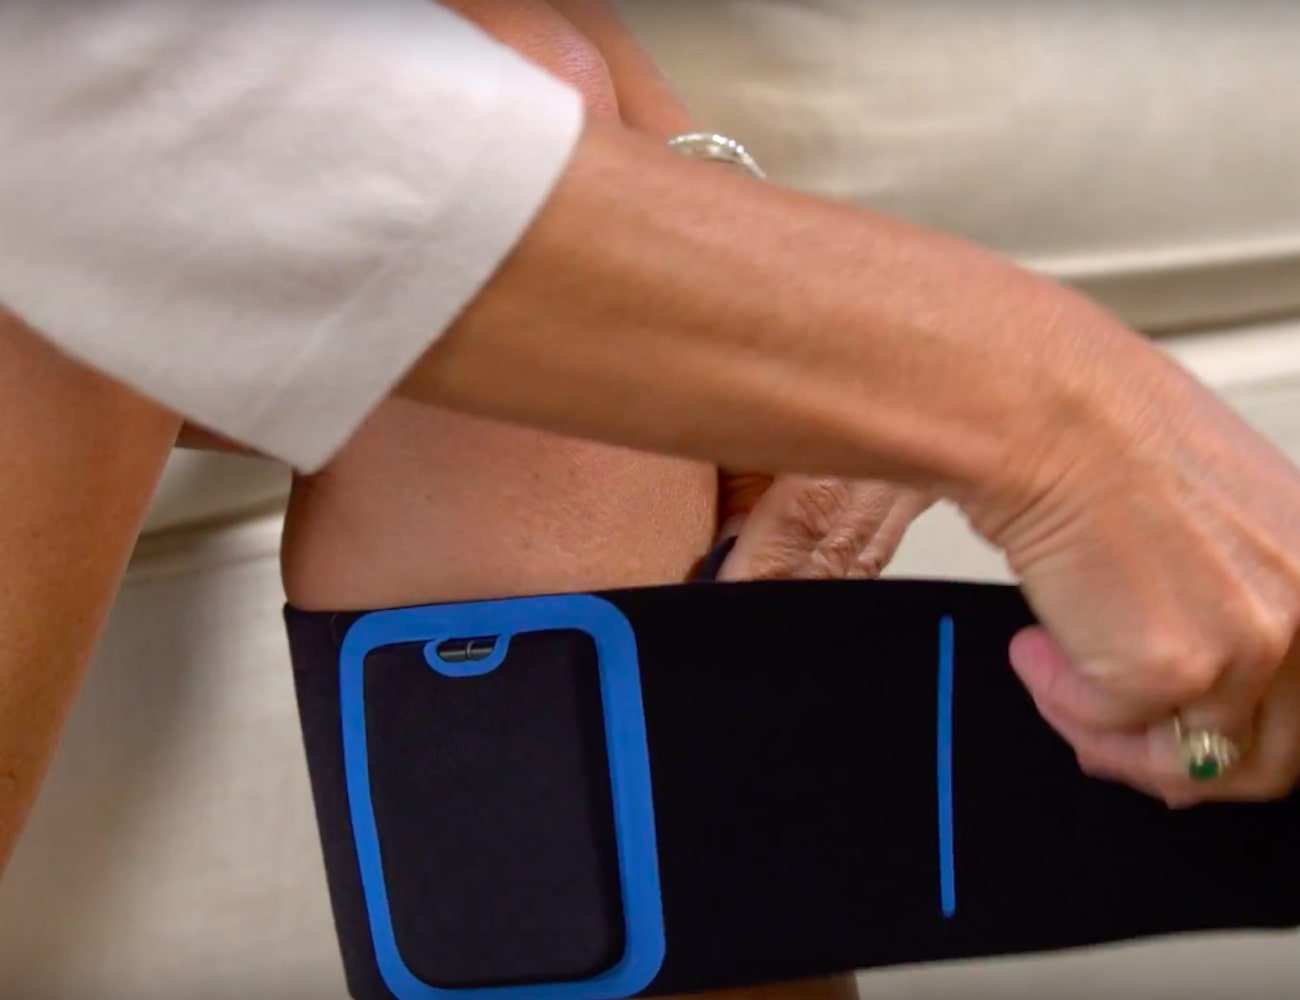 Quell 2.0 is a wearable pain relief kit for getting rid of ...